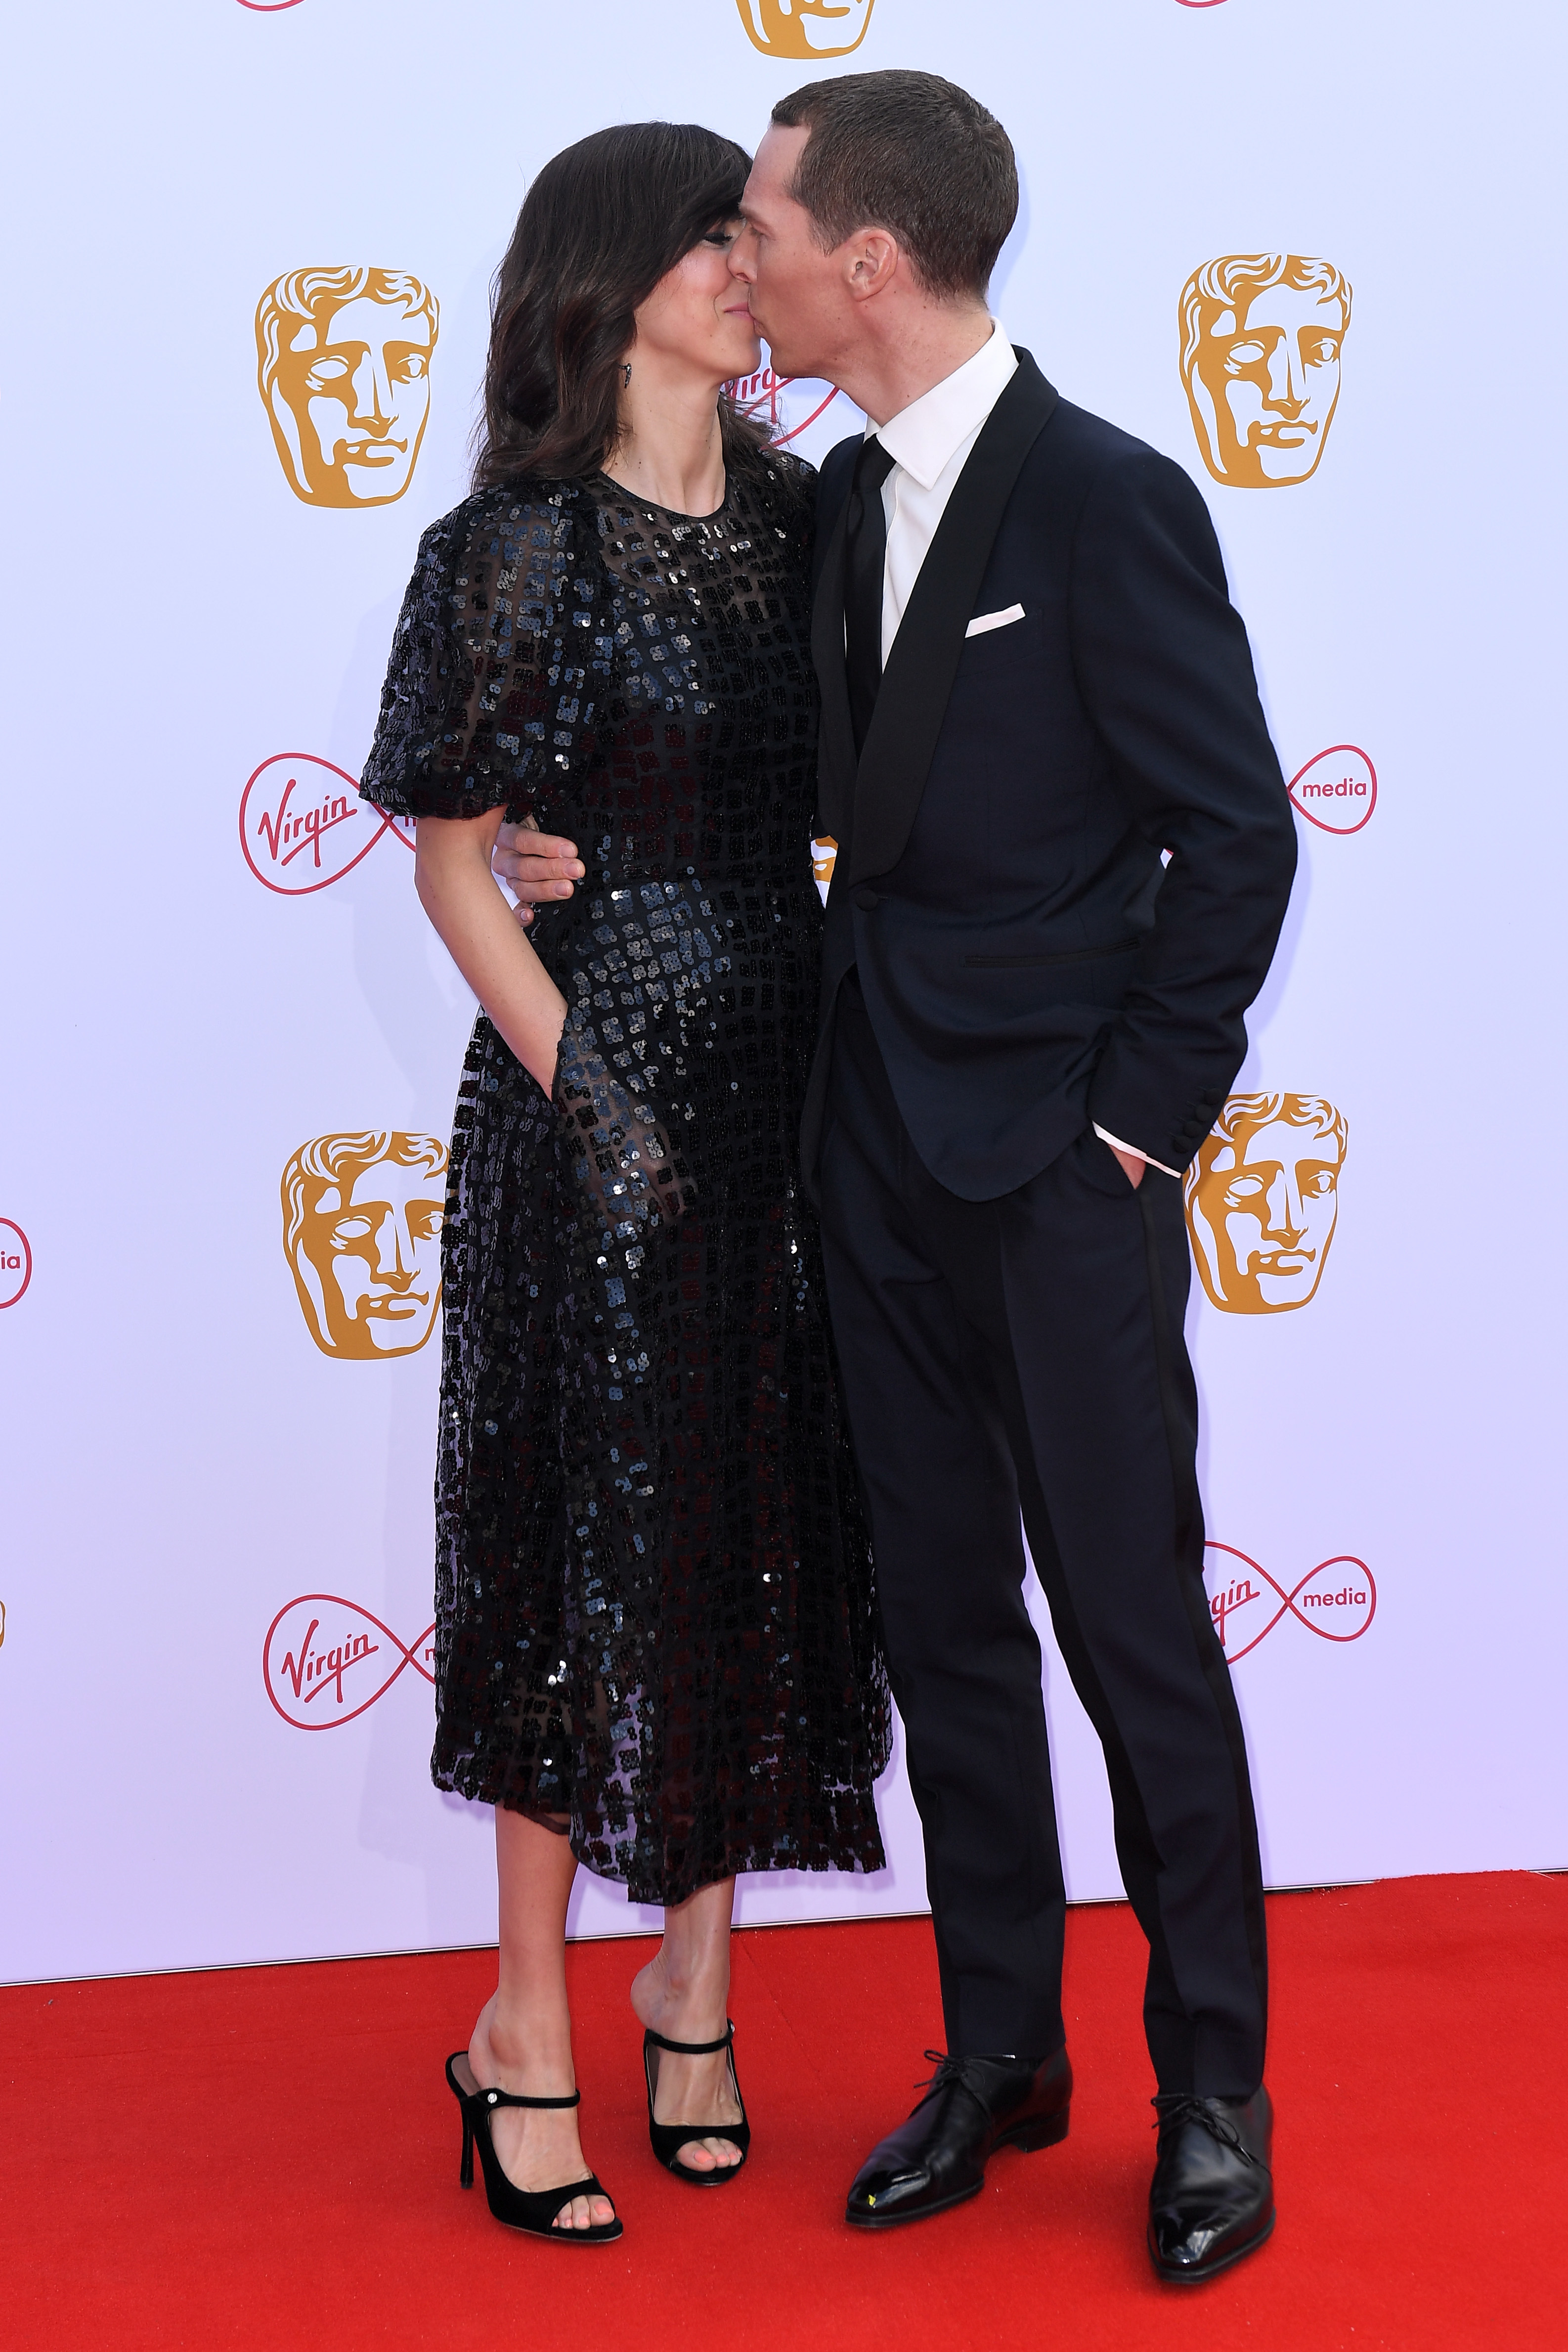 Benedict Cumberbatch and Sophie Hunter packed on the PDA while attending the British Academy Television Awards in London, England on May 12, 2019.